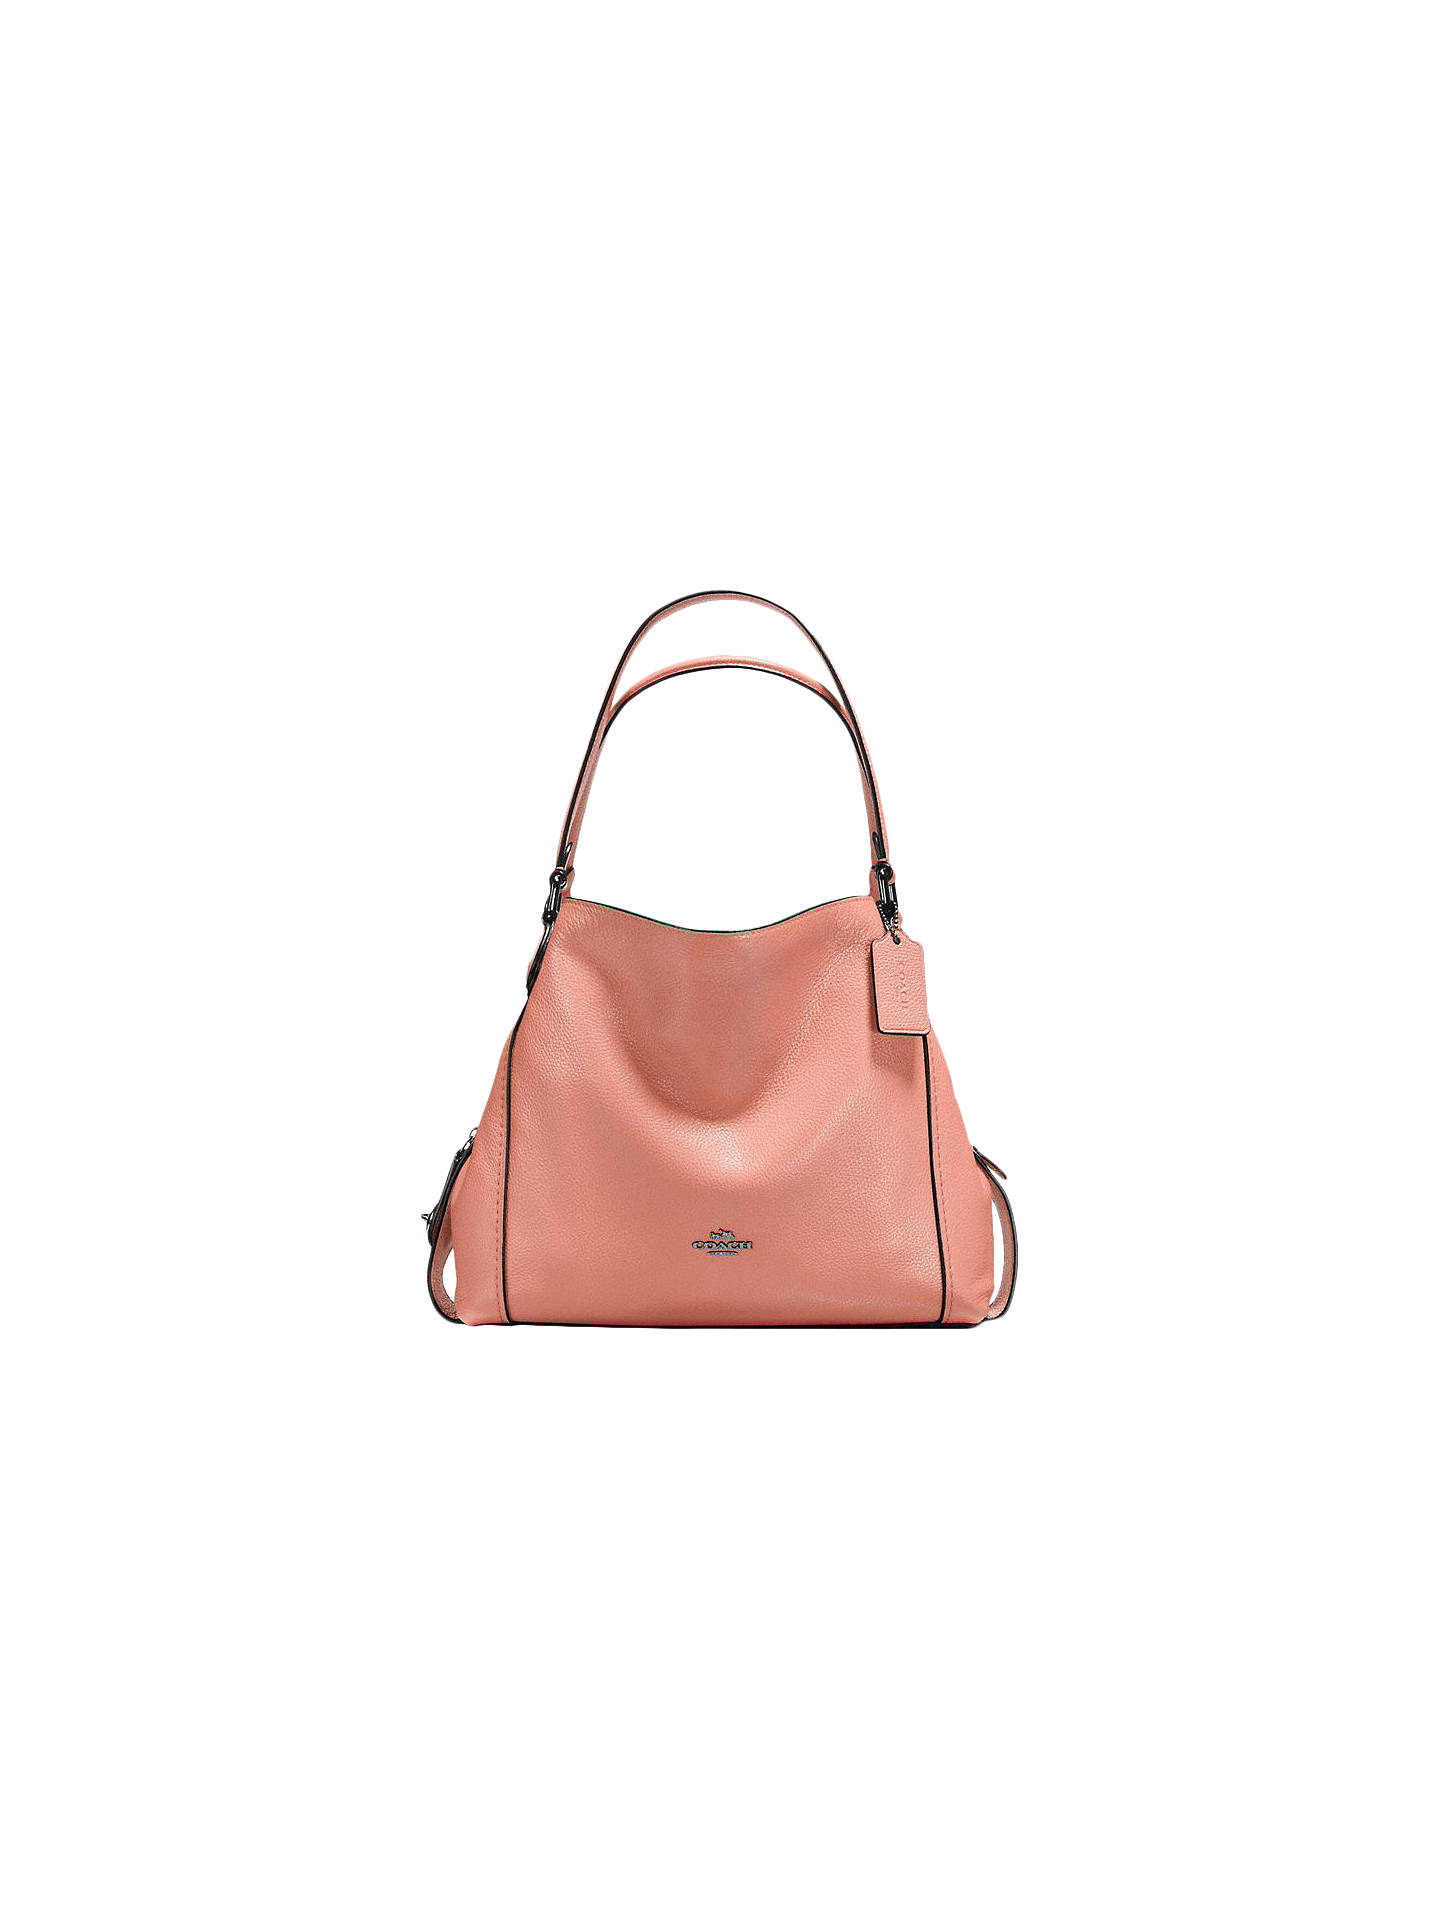 Coach Edie 31 Polished Pebble Leather Shoulder Bag at John Lewis ... a0377a2bb2e6f